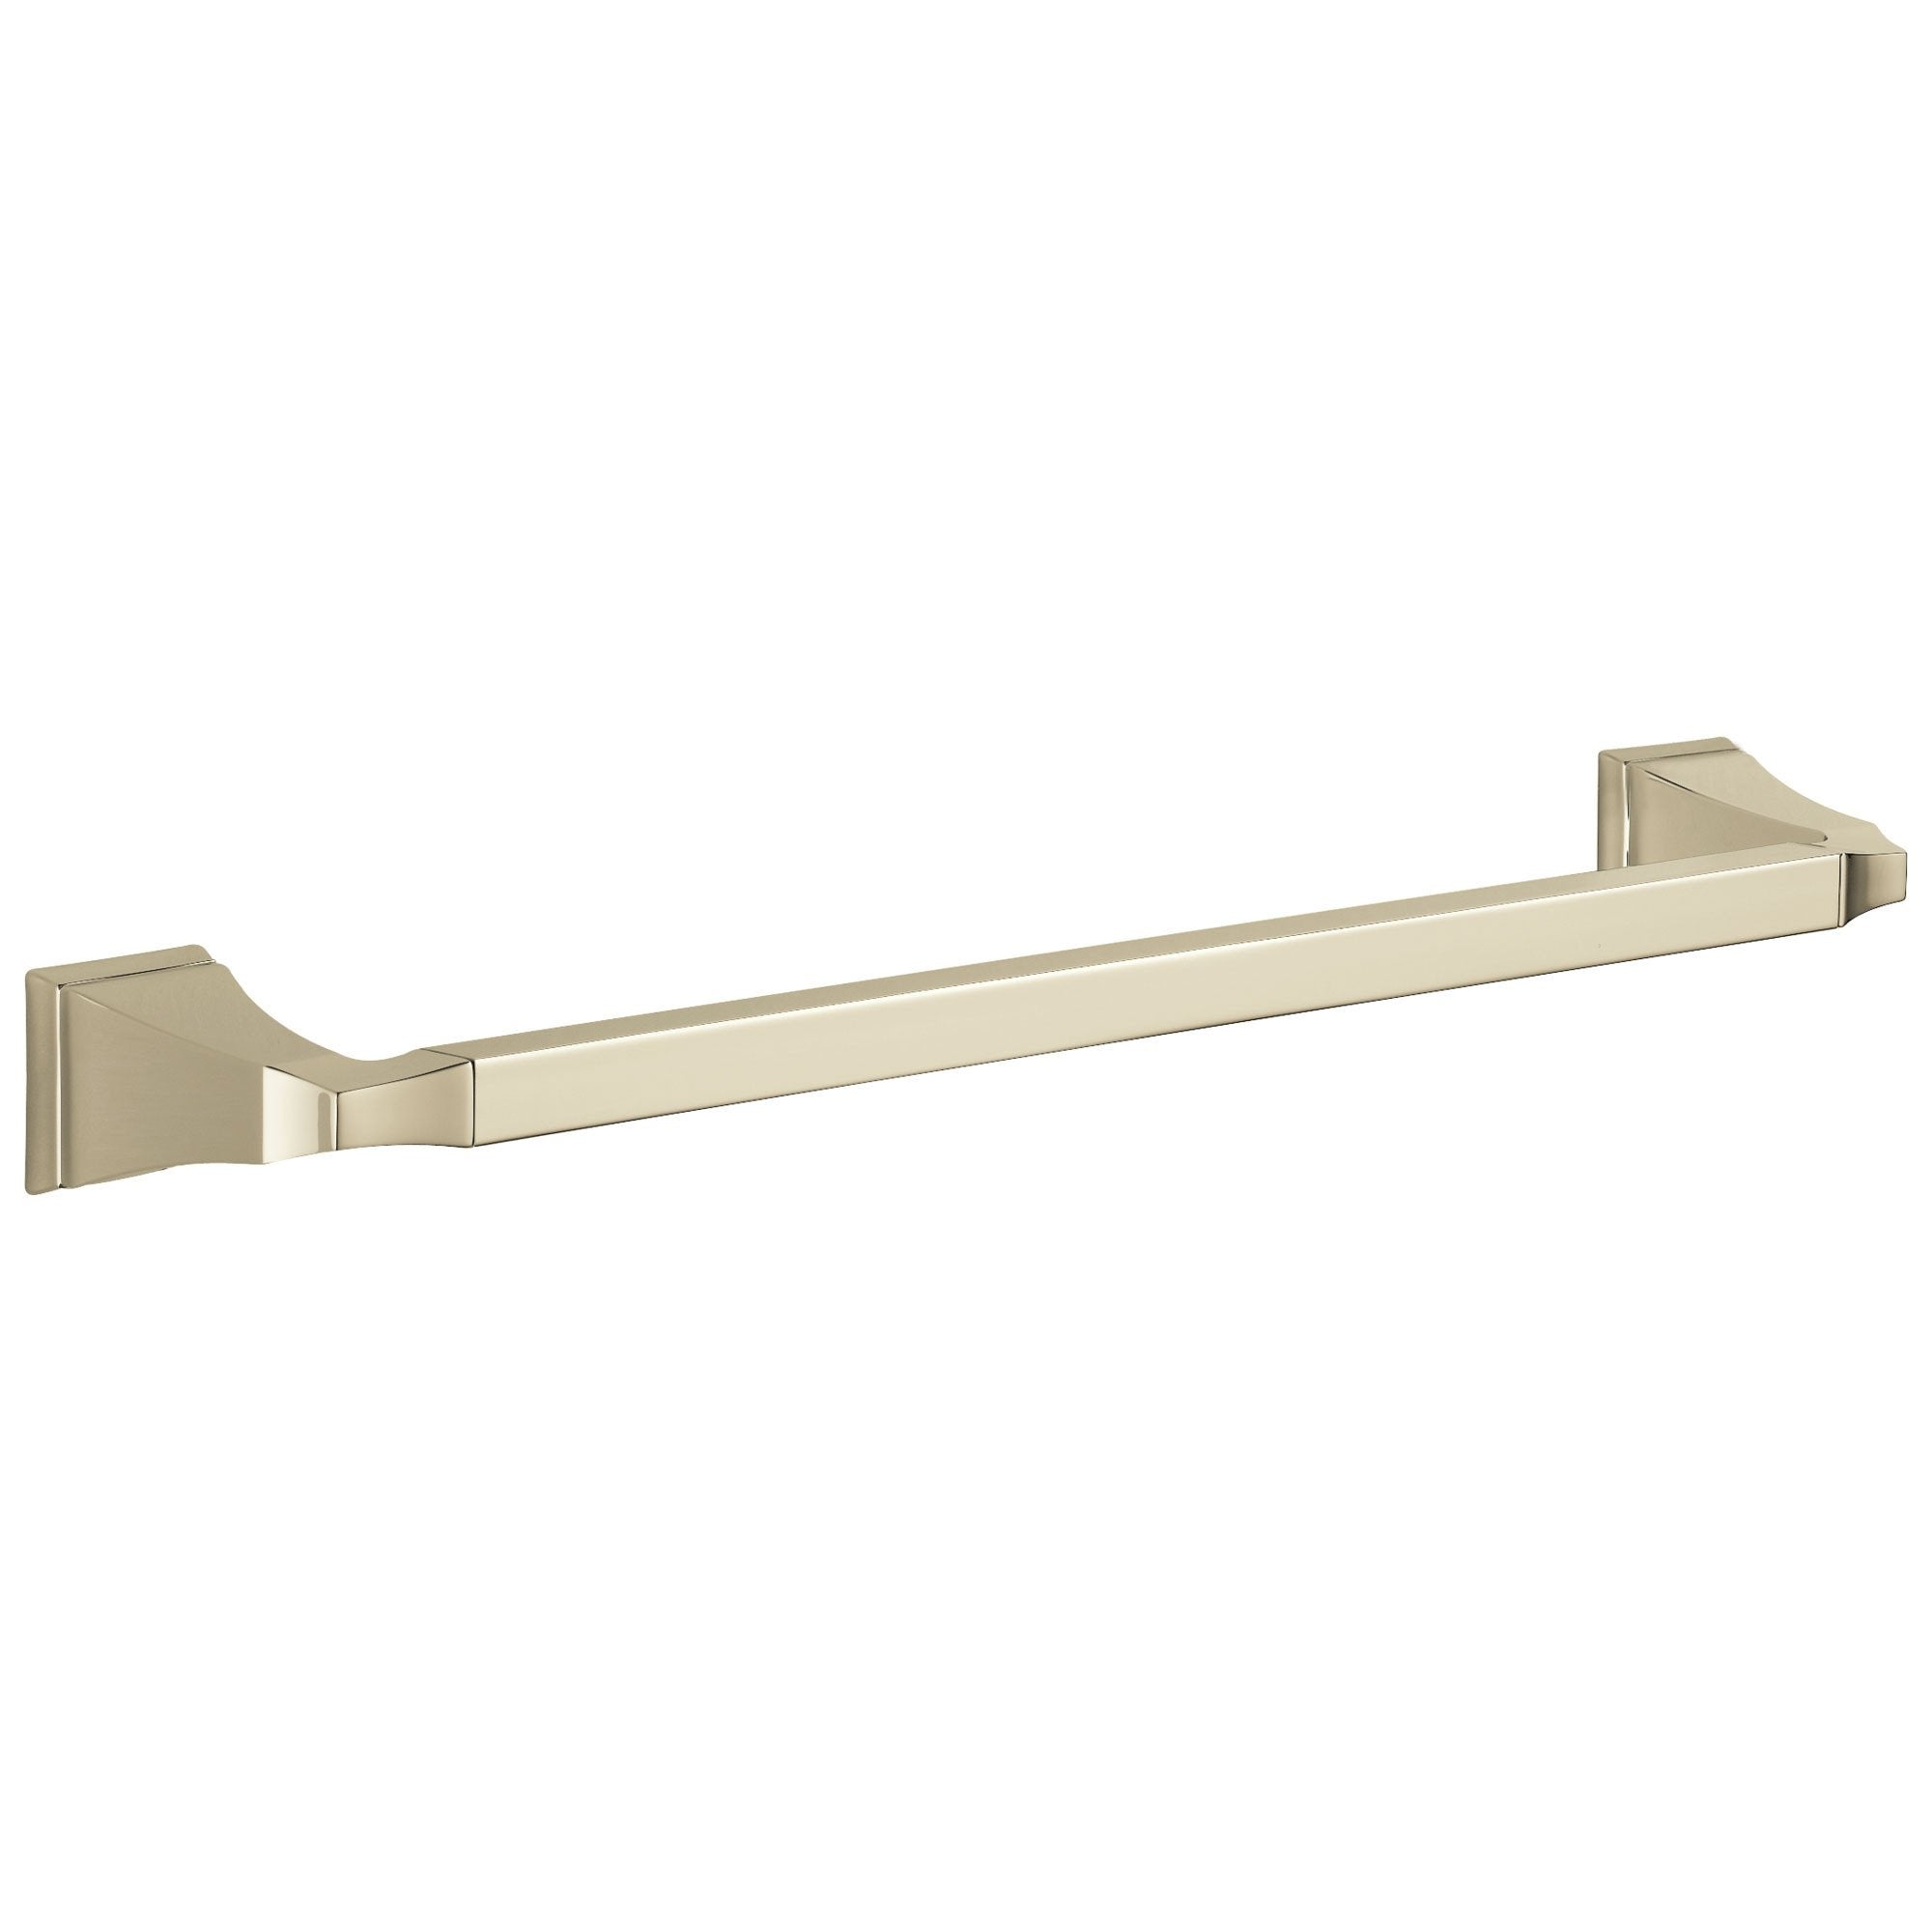 "Delta Dryden Collection Polished Nickel Finish 18"" Single Towel Bar D75118PN"